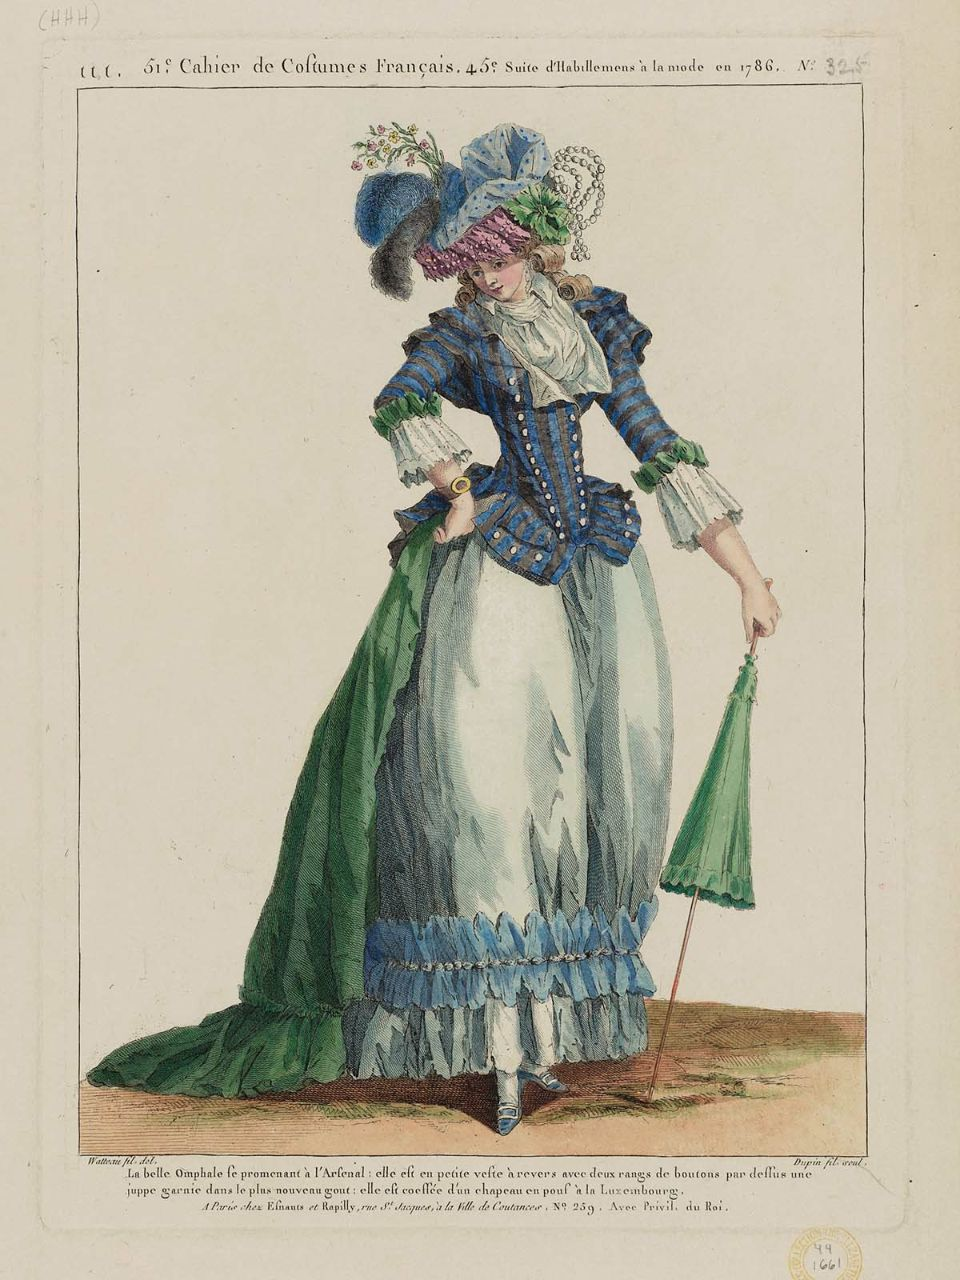 1795–1820 in Western fashion